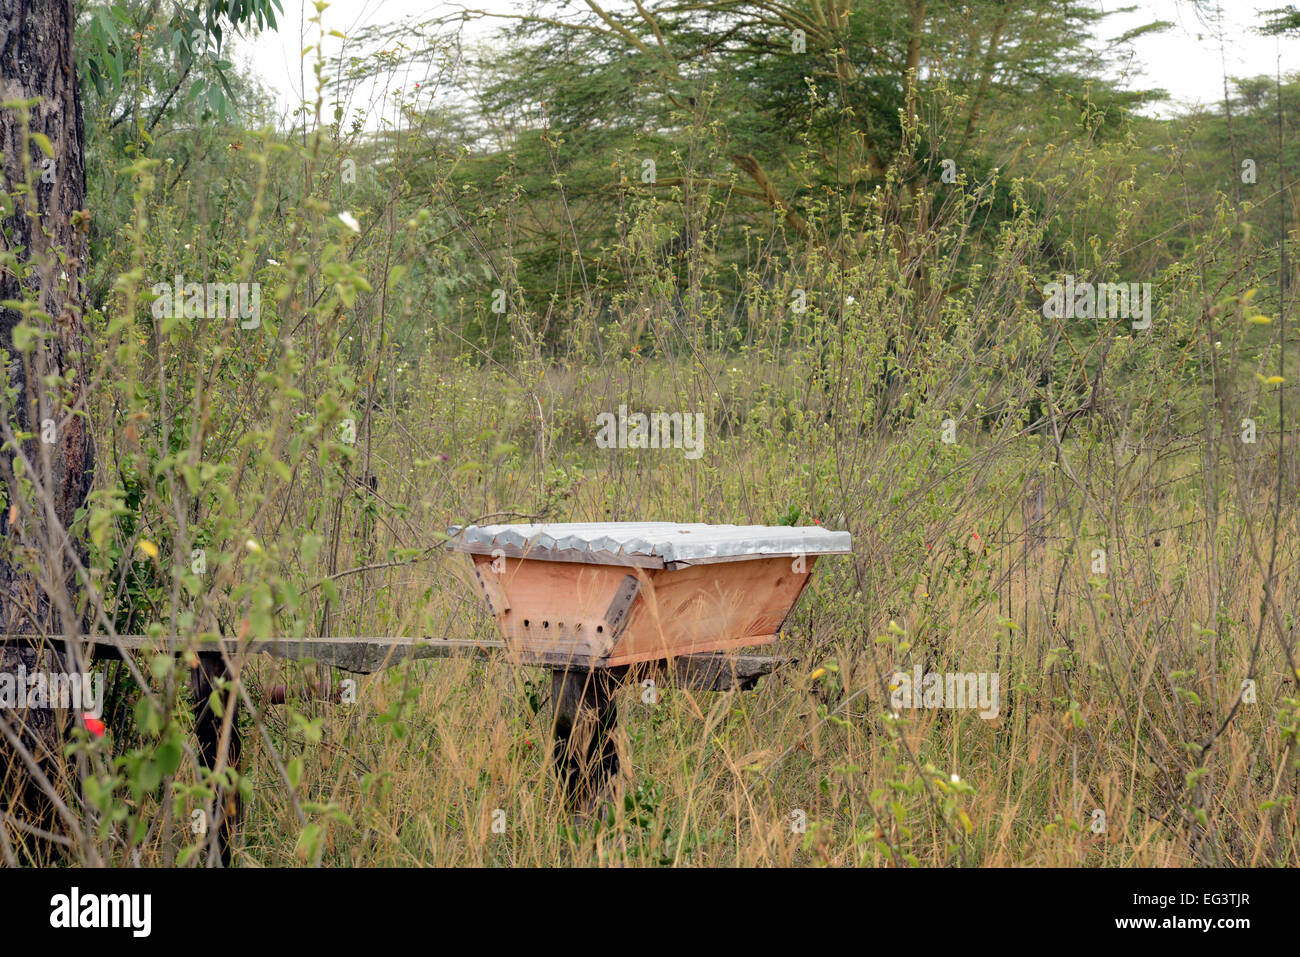 Kenyan Beekeepers Hive Called A Horizontal Top Bar Hive At Soysambu In  Kenya, East Africa